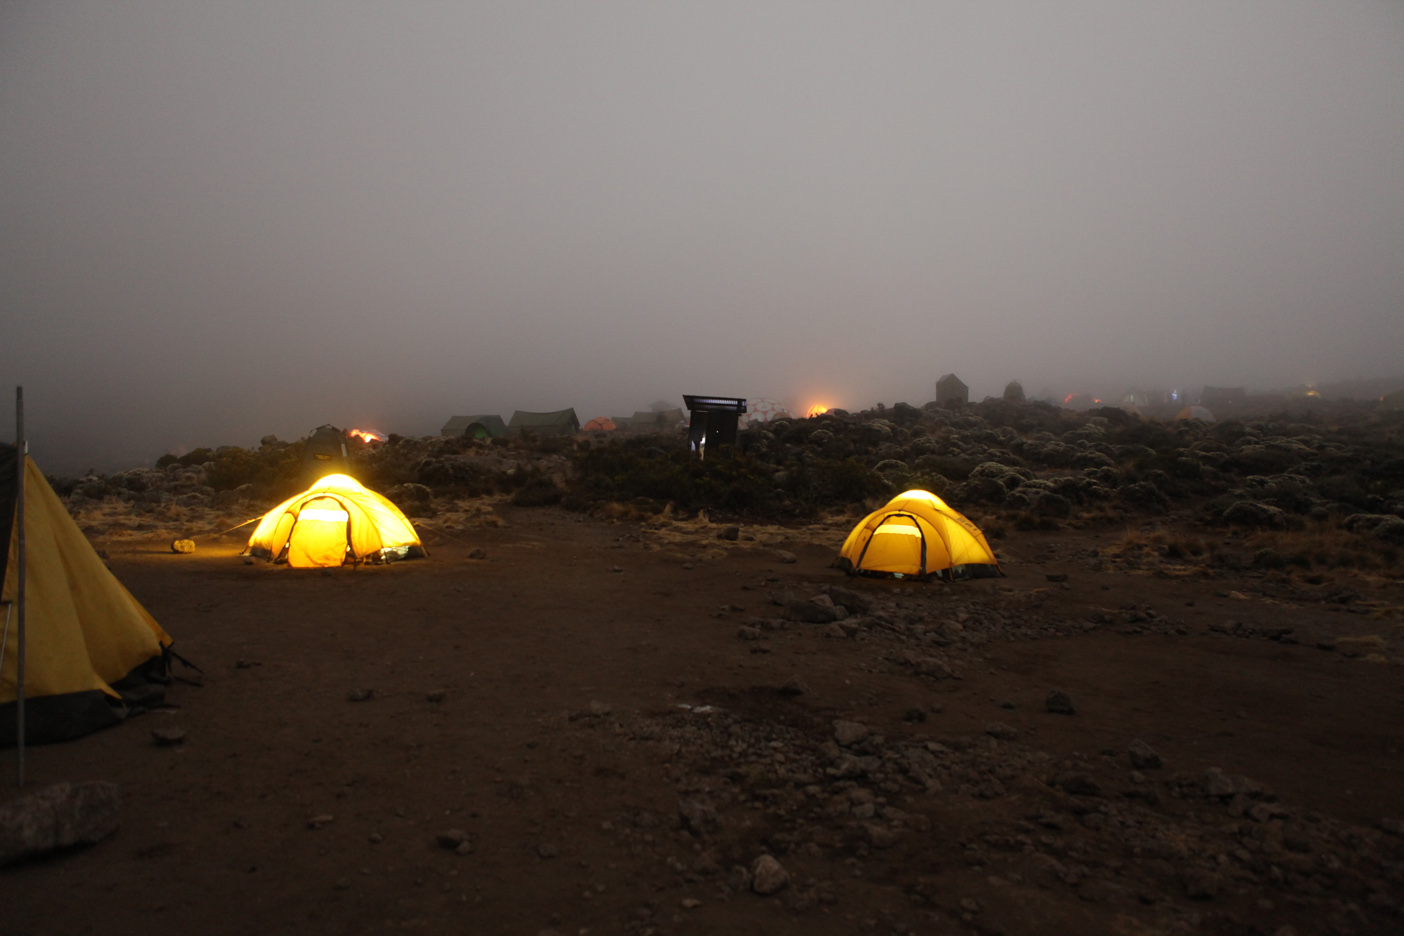 Our tents after dark at the base of the Barranco Wall around 8:30PM.